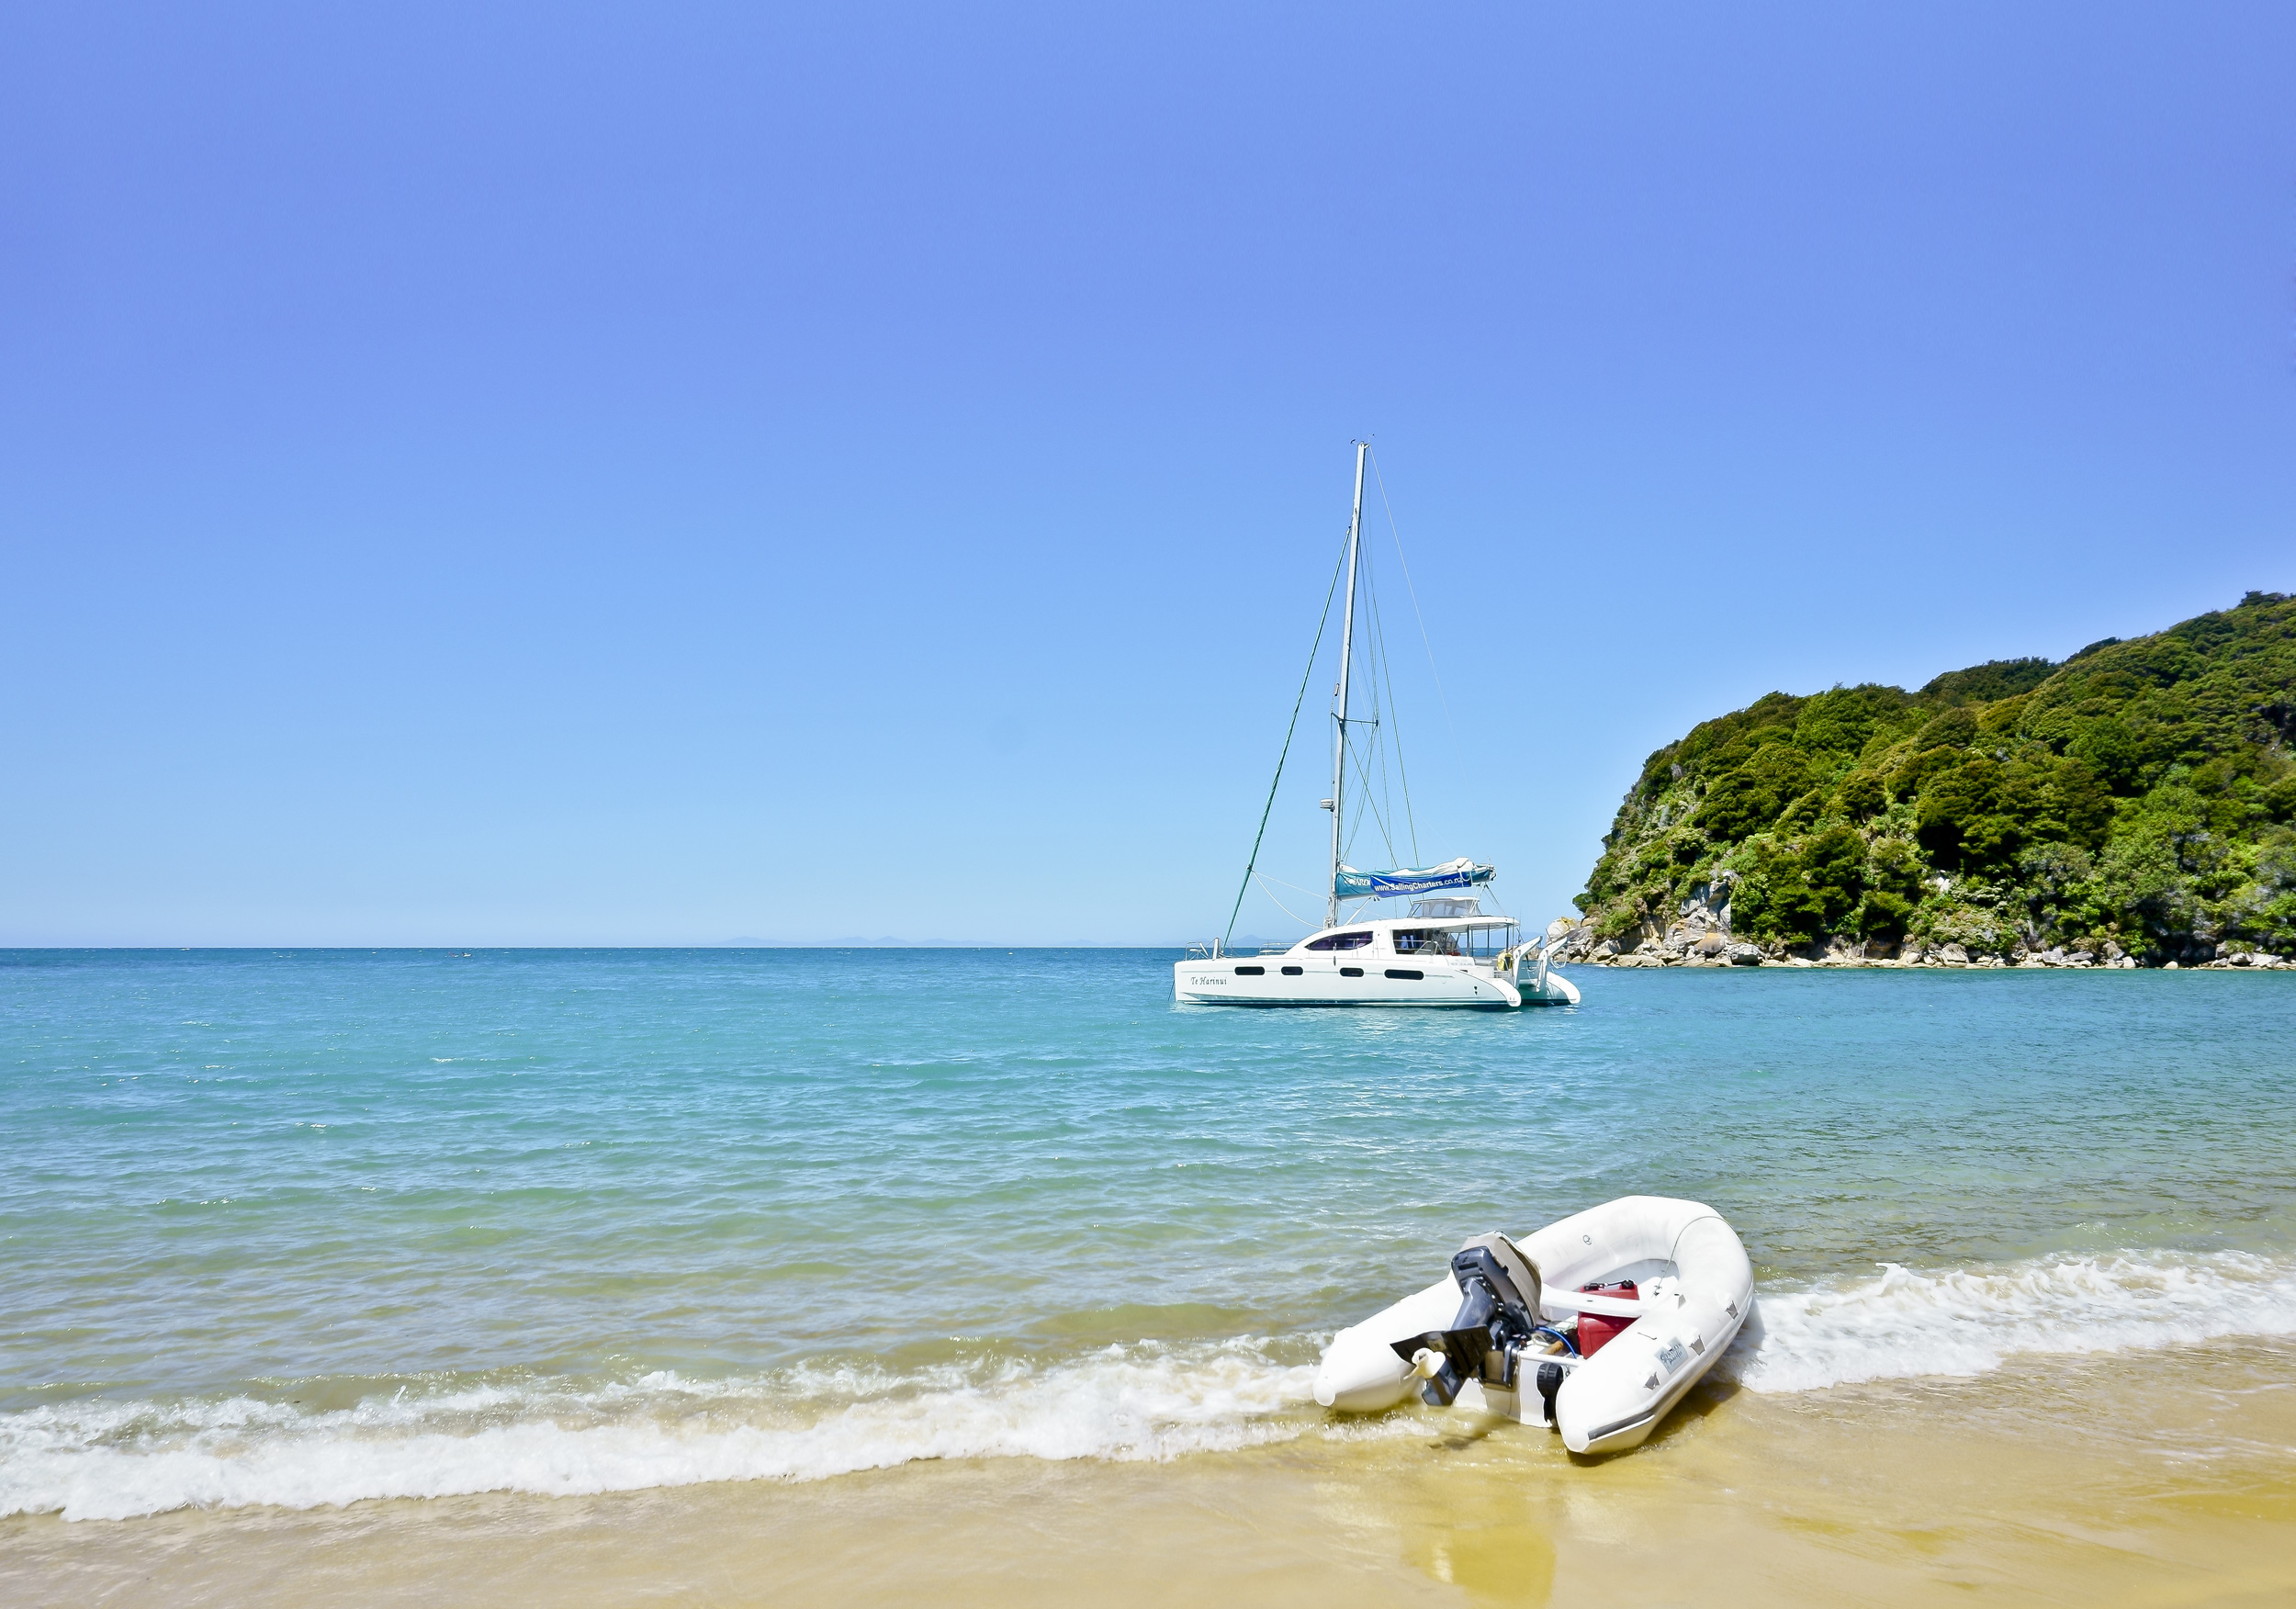 A motorised dinghy at shore and a boat moored further out in the peaceful waters of a bay